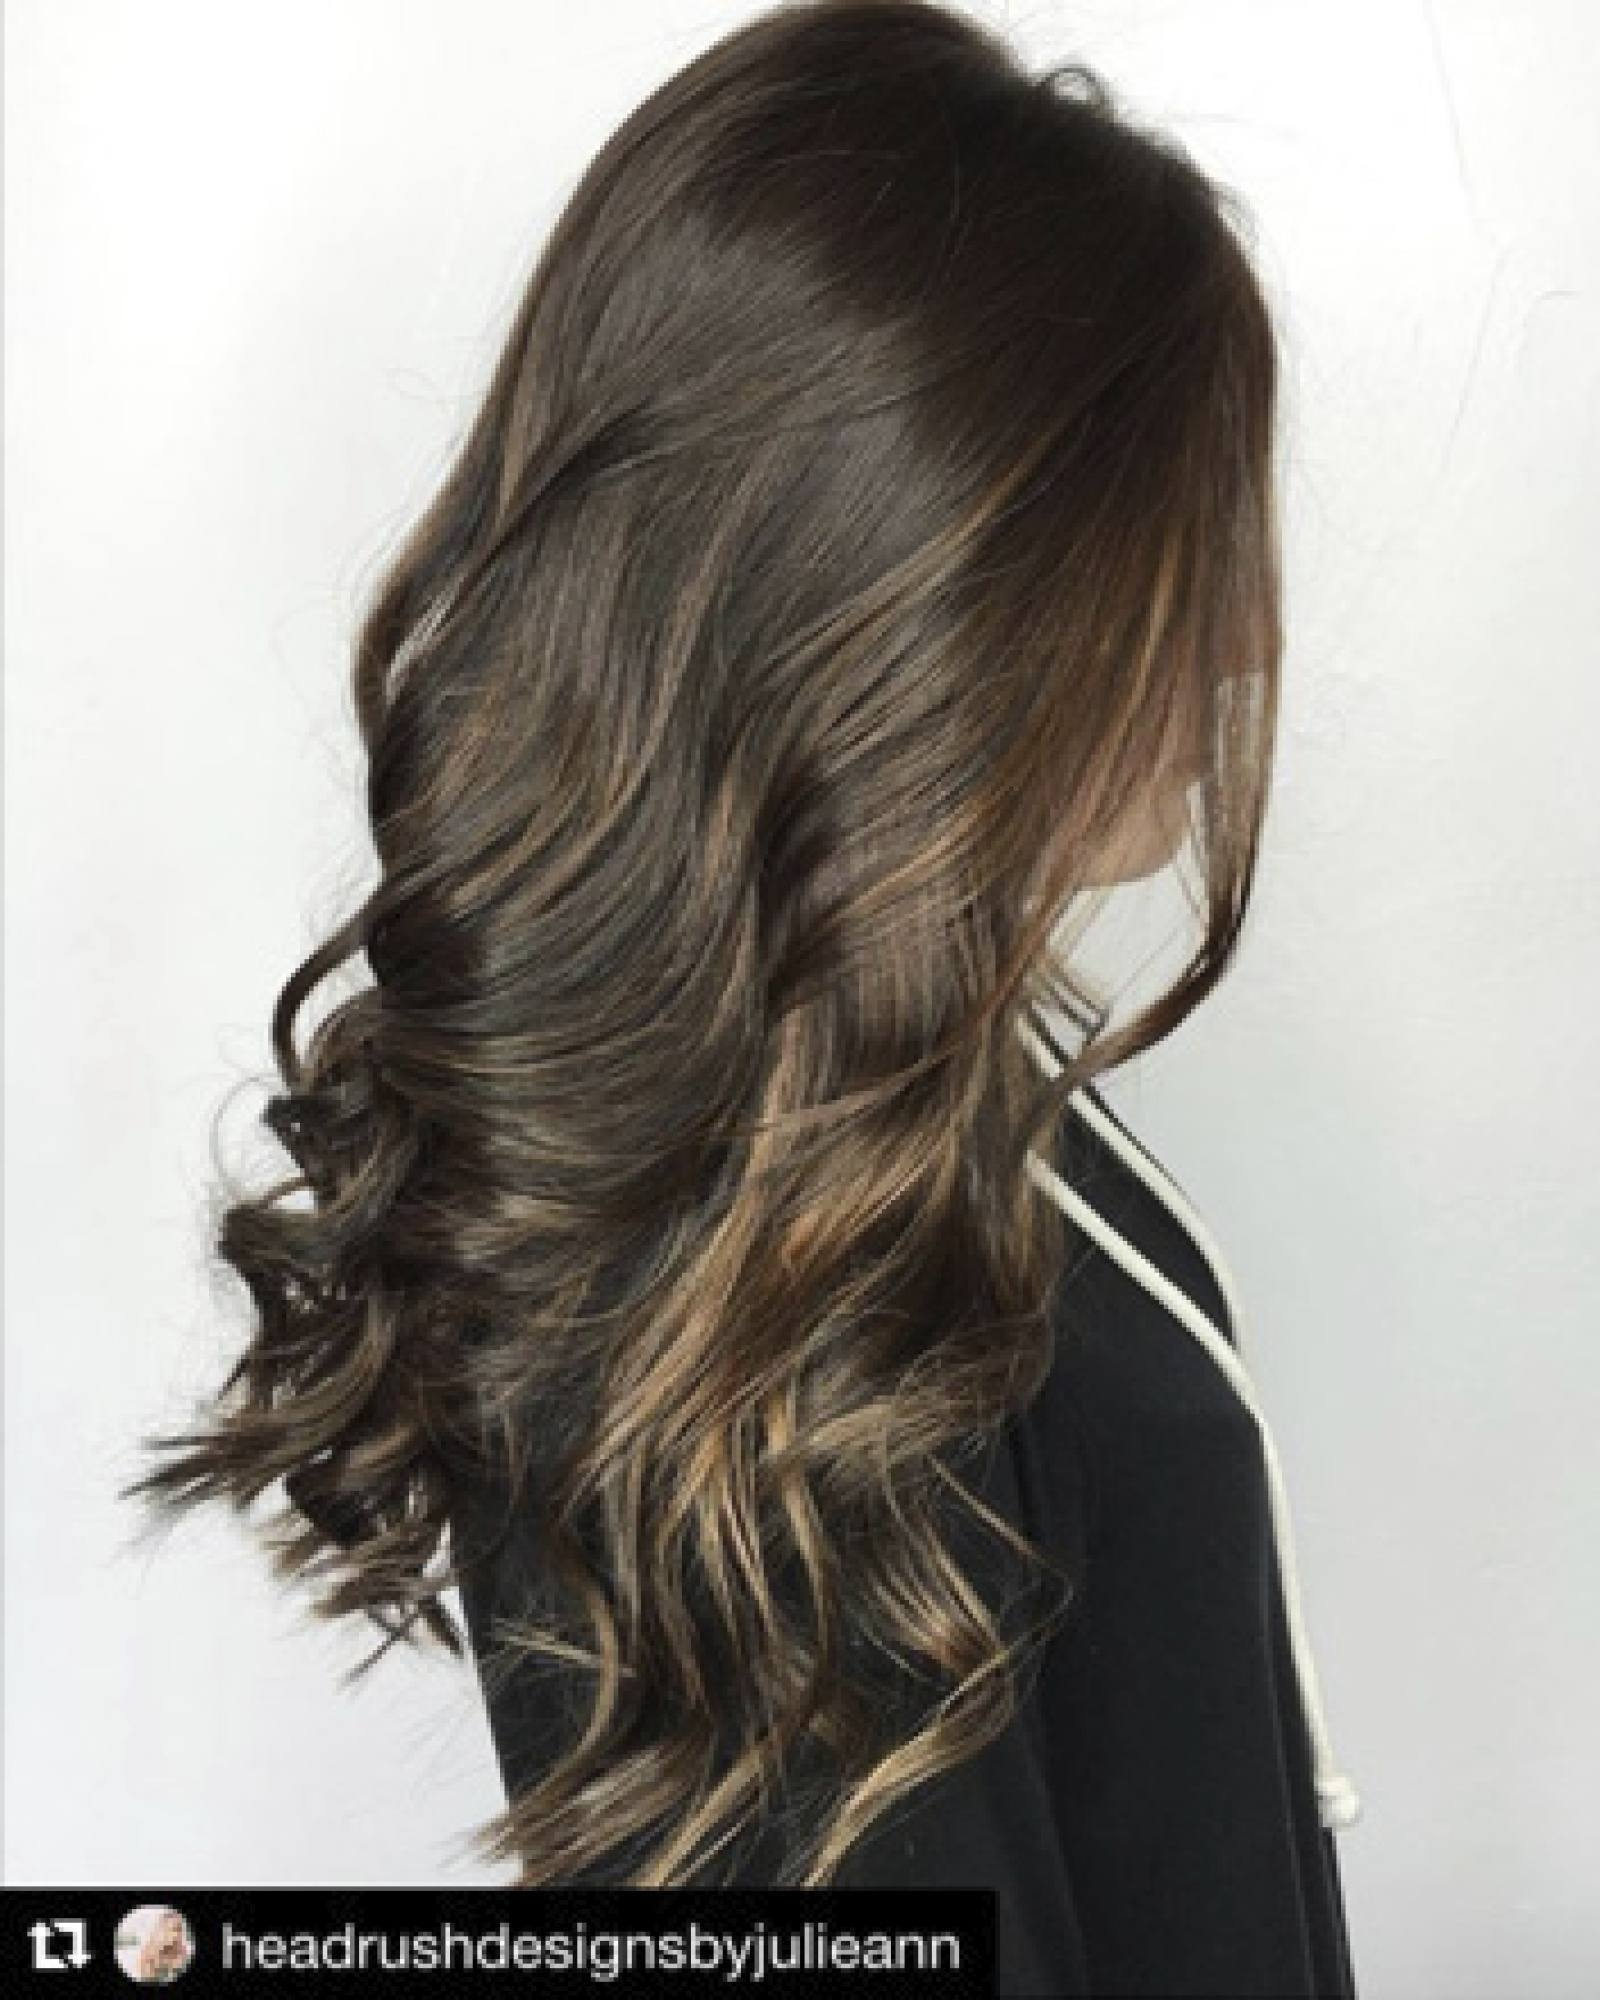 Brunette model with gold highlights and curly hair style